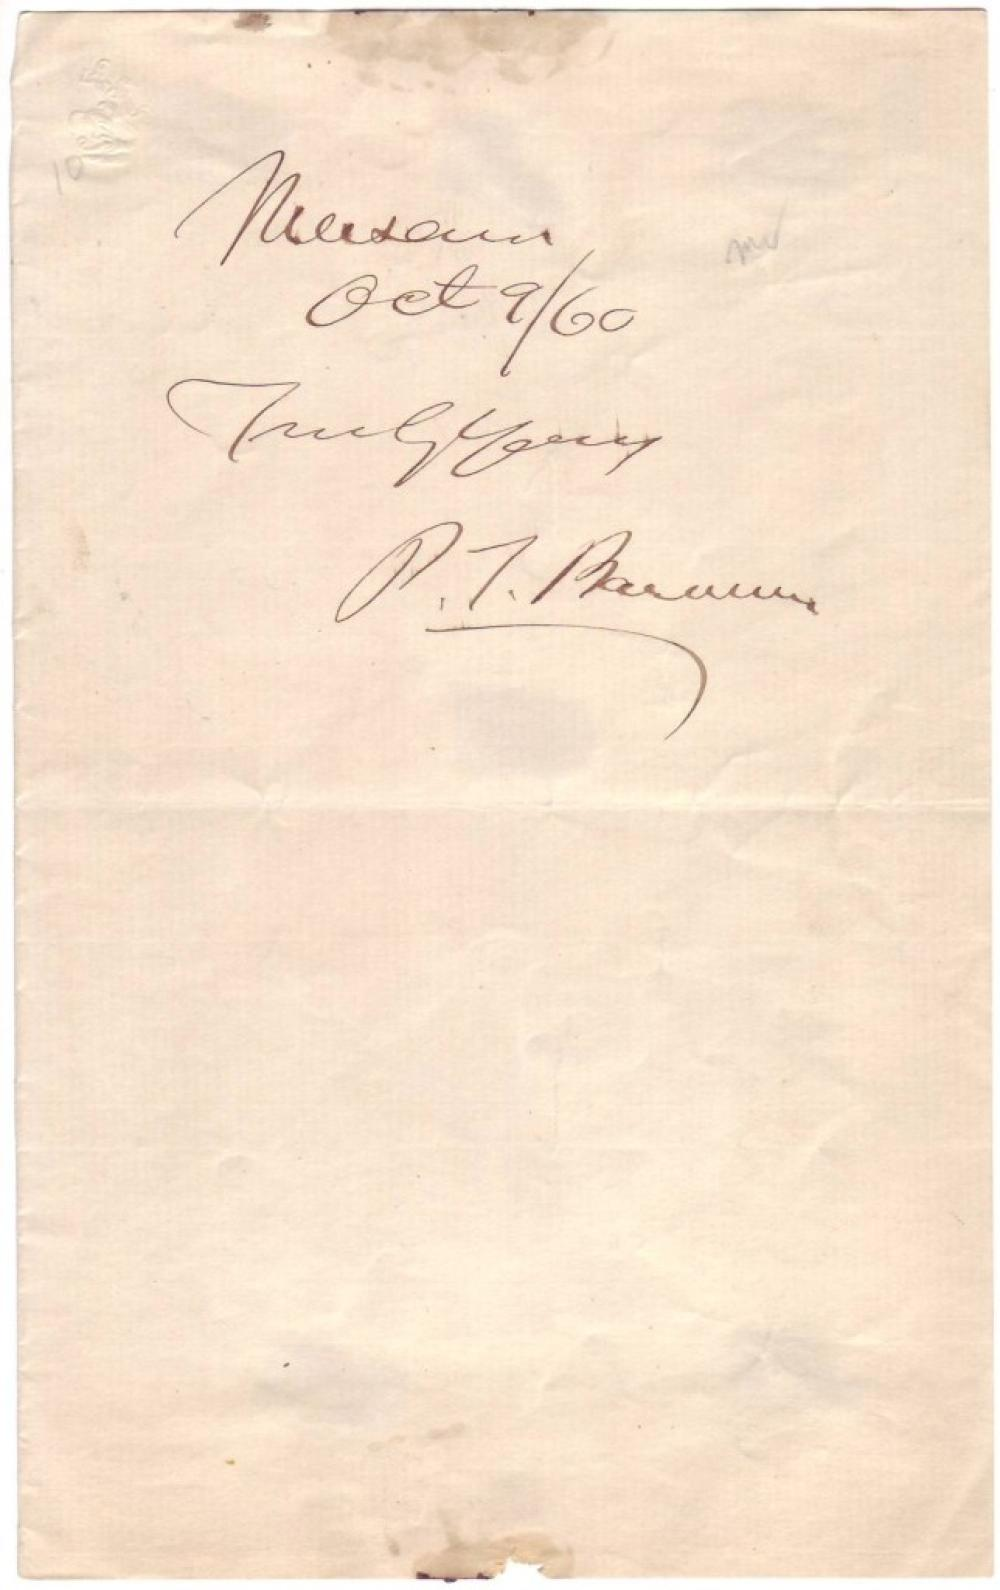 BARNUM, PHINEAS TAYLOR. Signature and date, on a slip of paper: